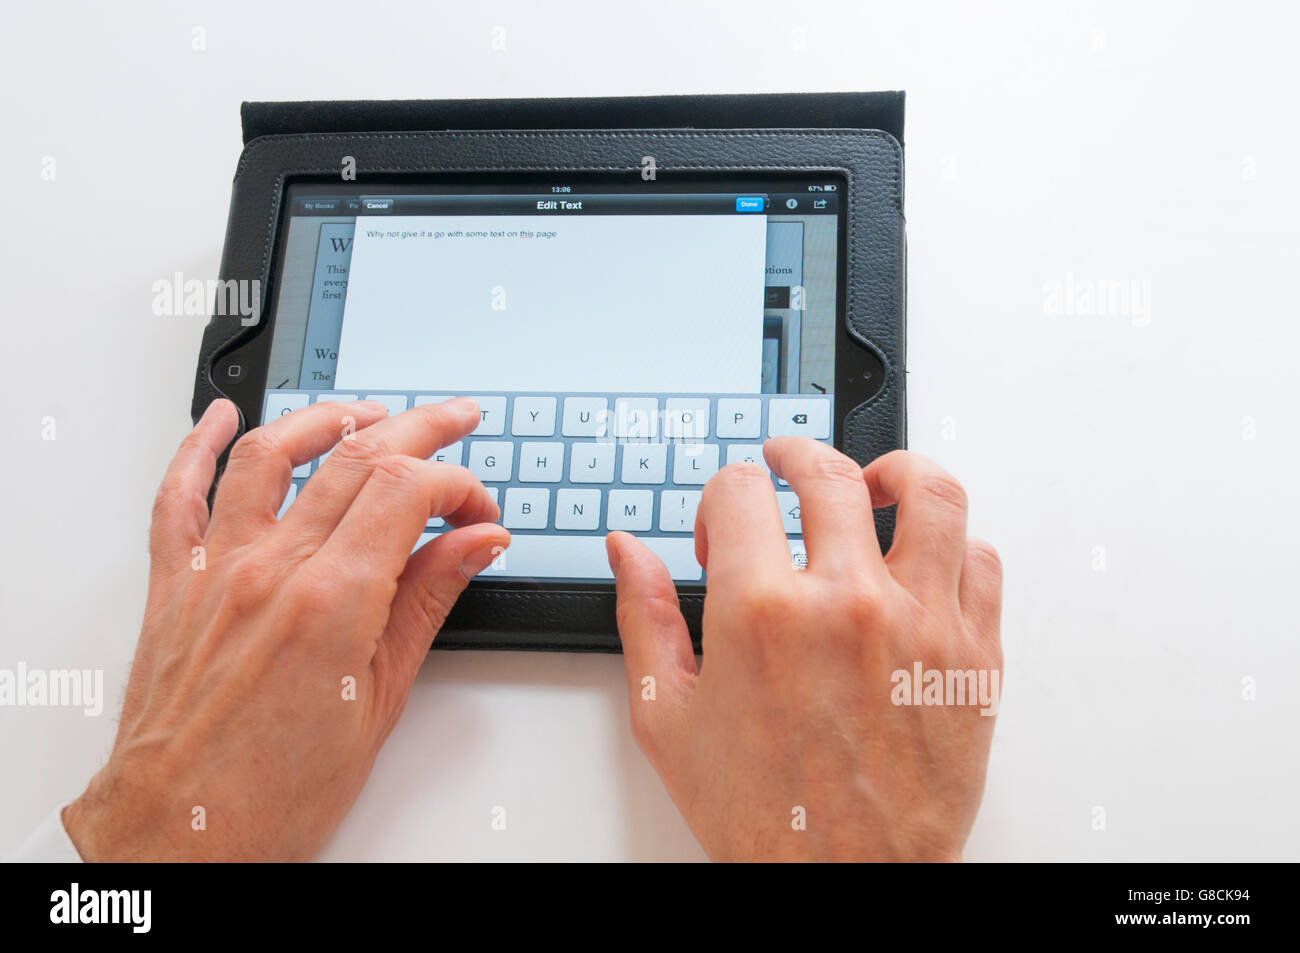 Man's hands typing on a tablet keyboard. - Stock Image